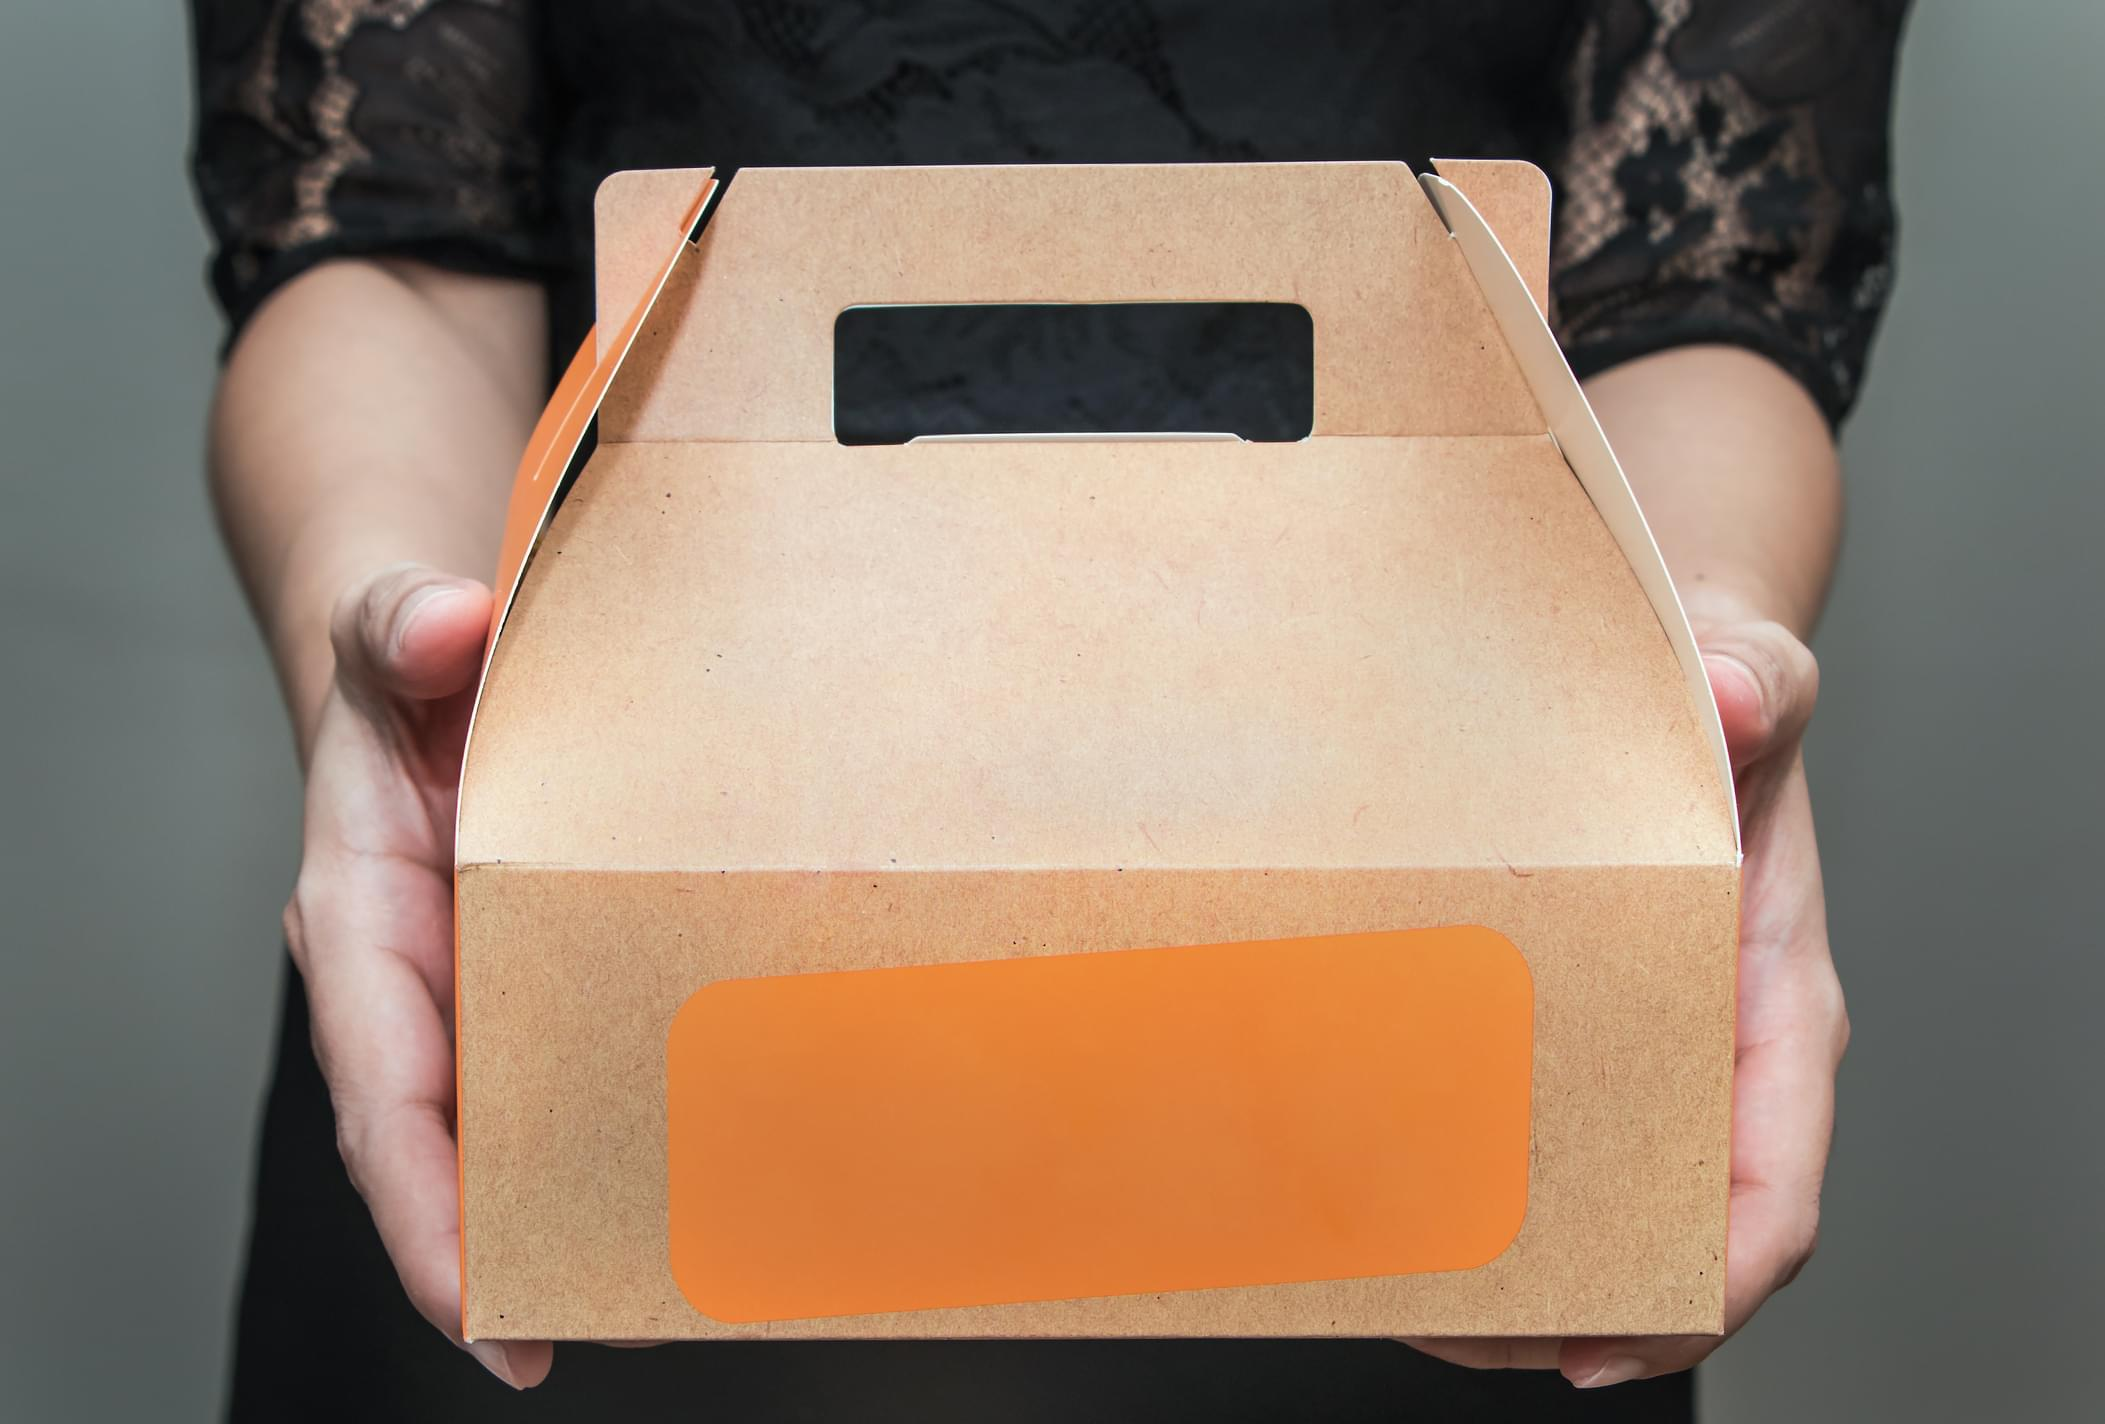 A woman in black dress stood bringing a snack box